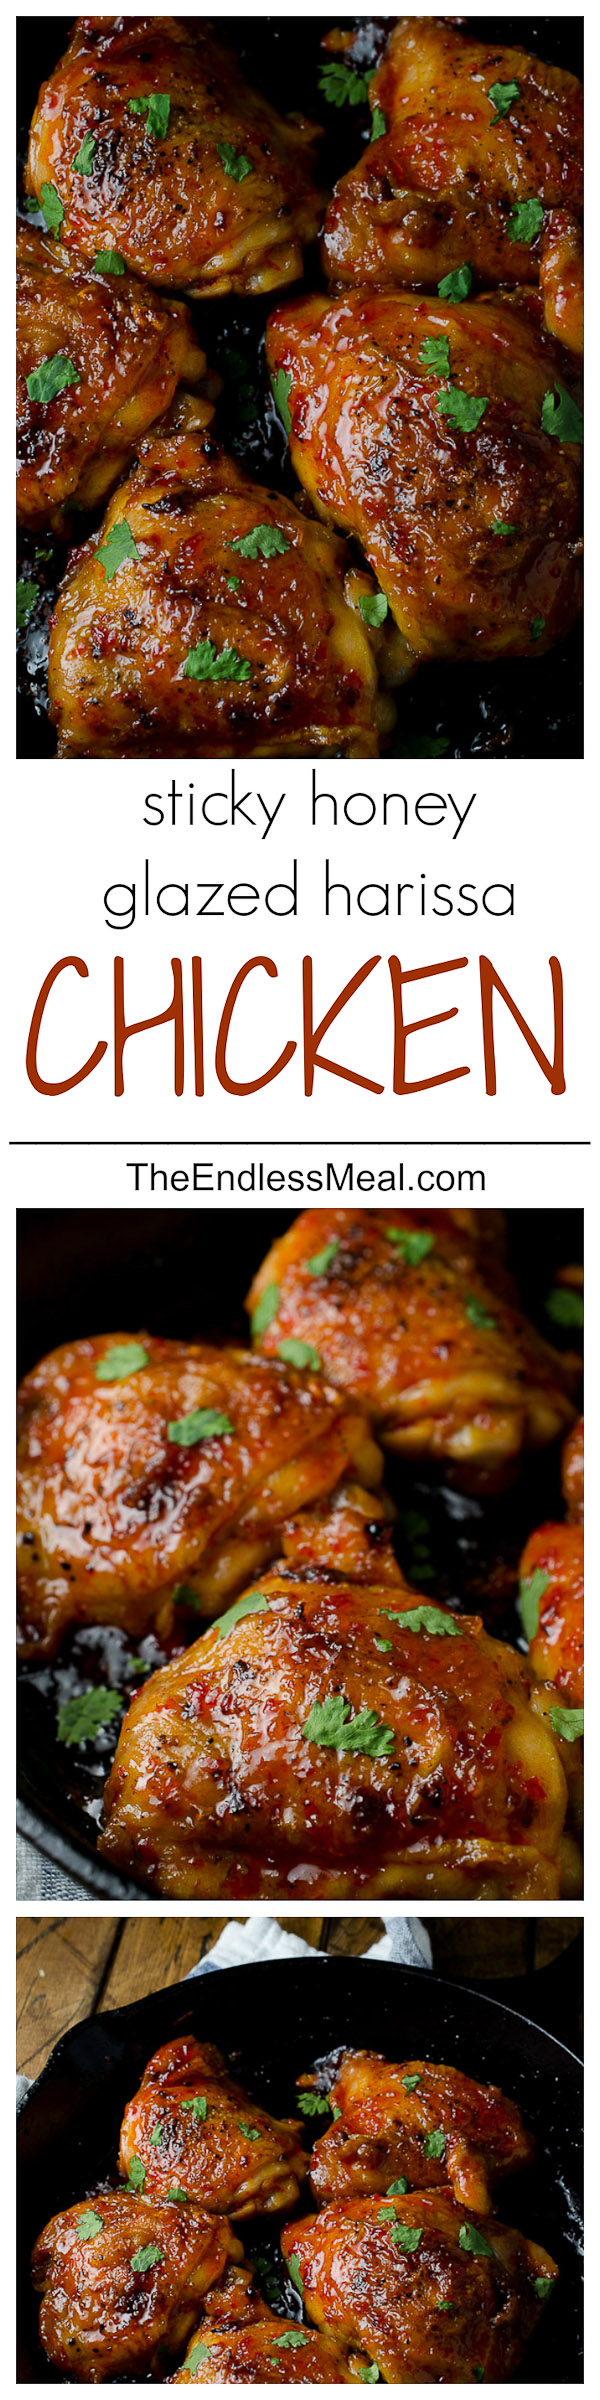 Sticky Harissa Honey Glazed Chicken SAVE FOR LATER! This Sticky Harissa Honey Glazed Chicken is the most delicious honey glazed chicken ever. The sweet and sticky sauce is spiced with harissa, a North African paste that is super flavourful. It will be a huge hit with your whole family!